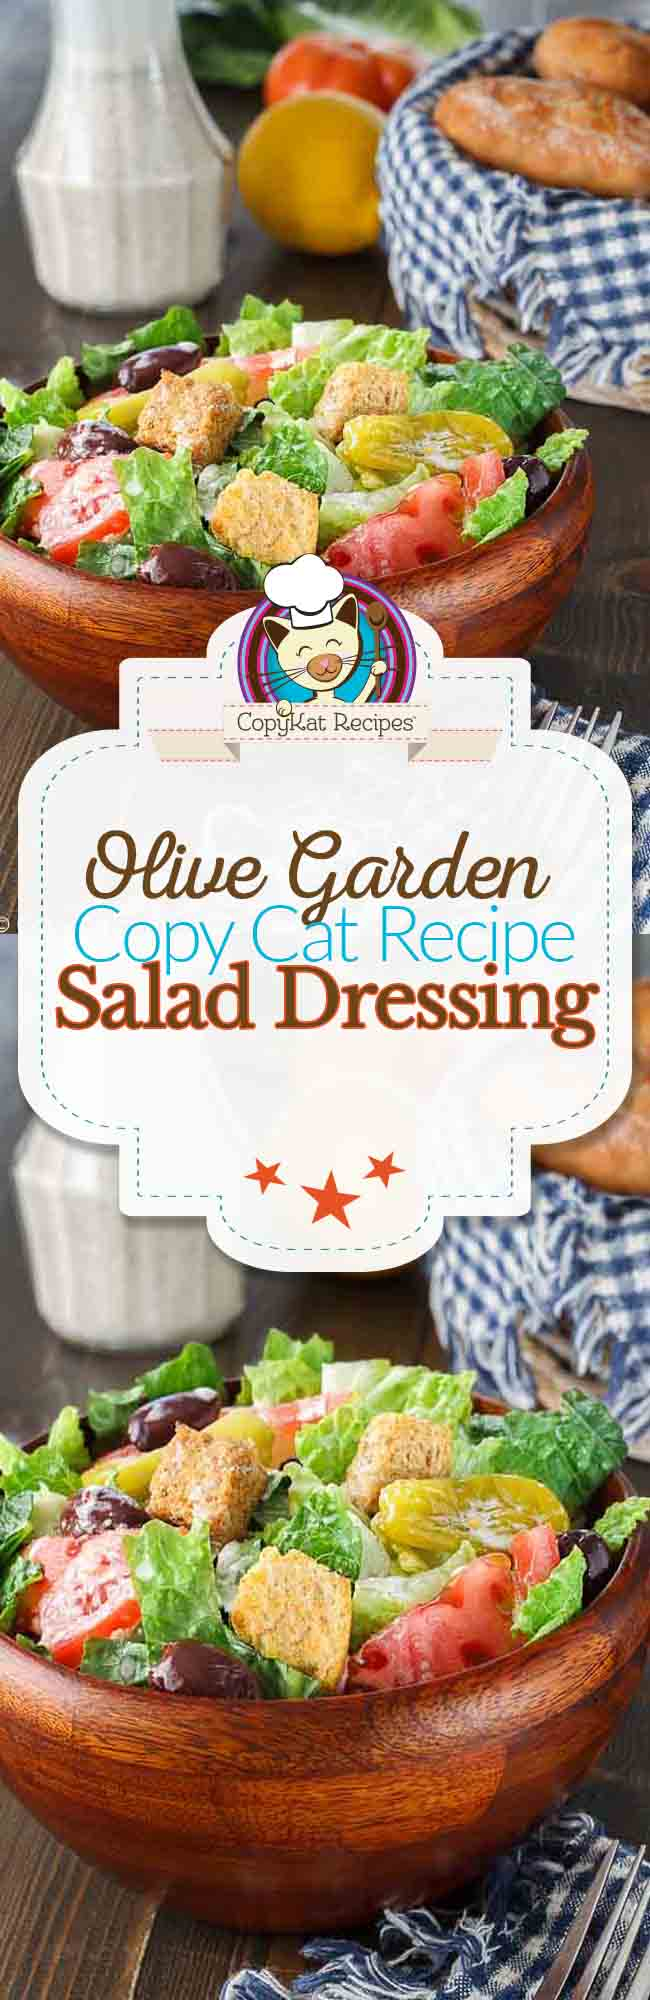 Make The Olive Garden Salad Dressing At Home. It Is So Easy.